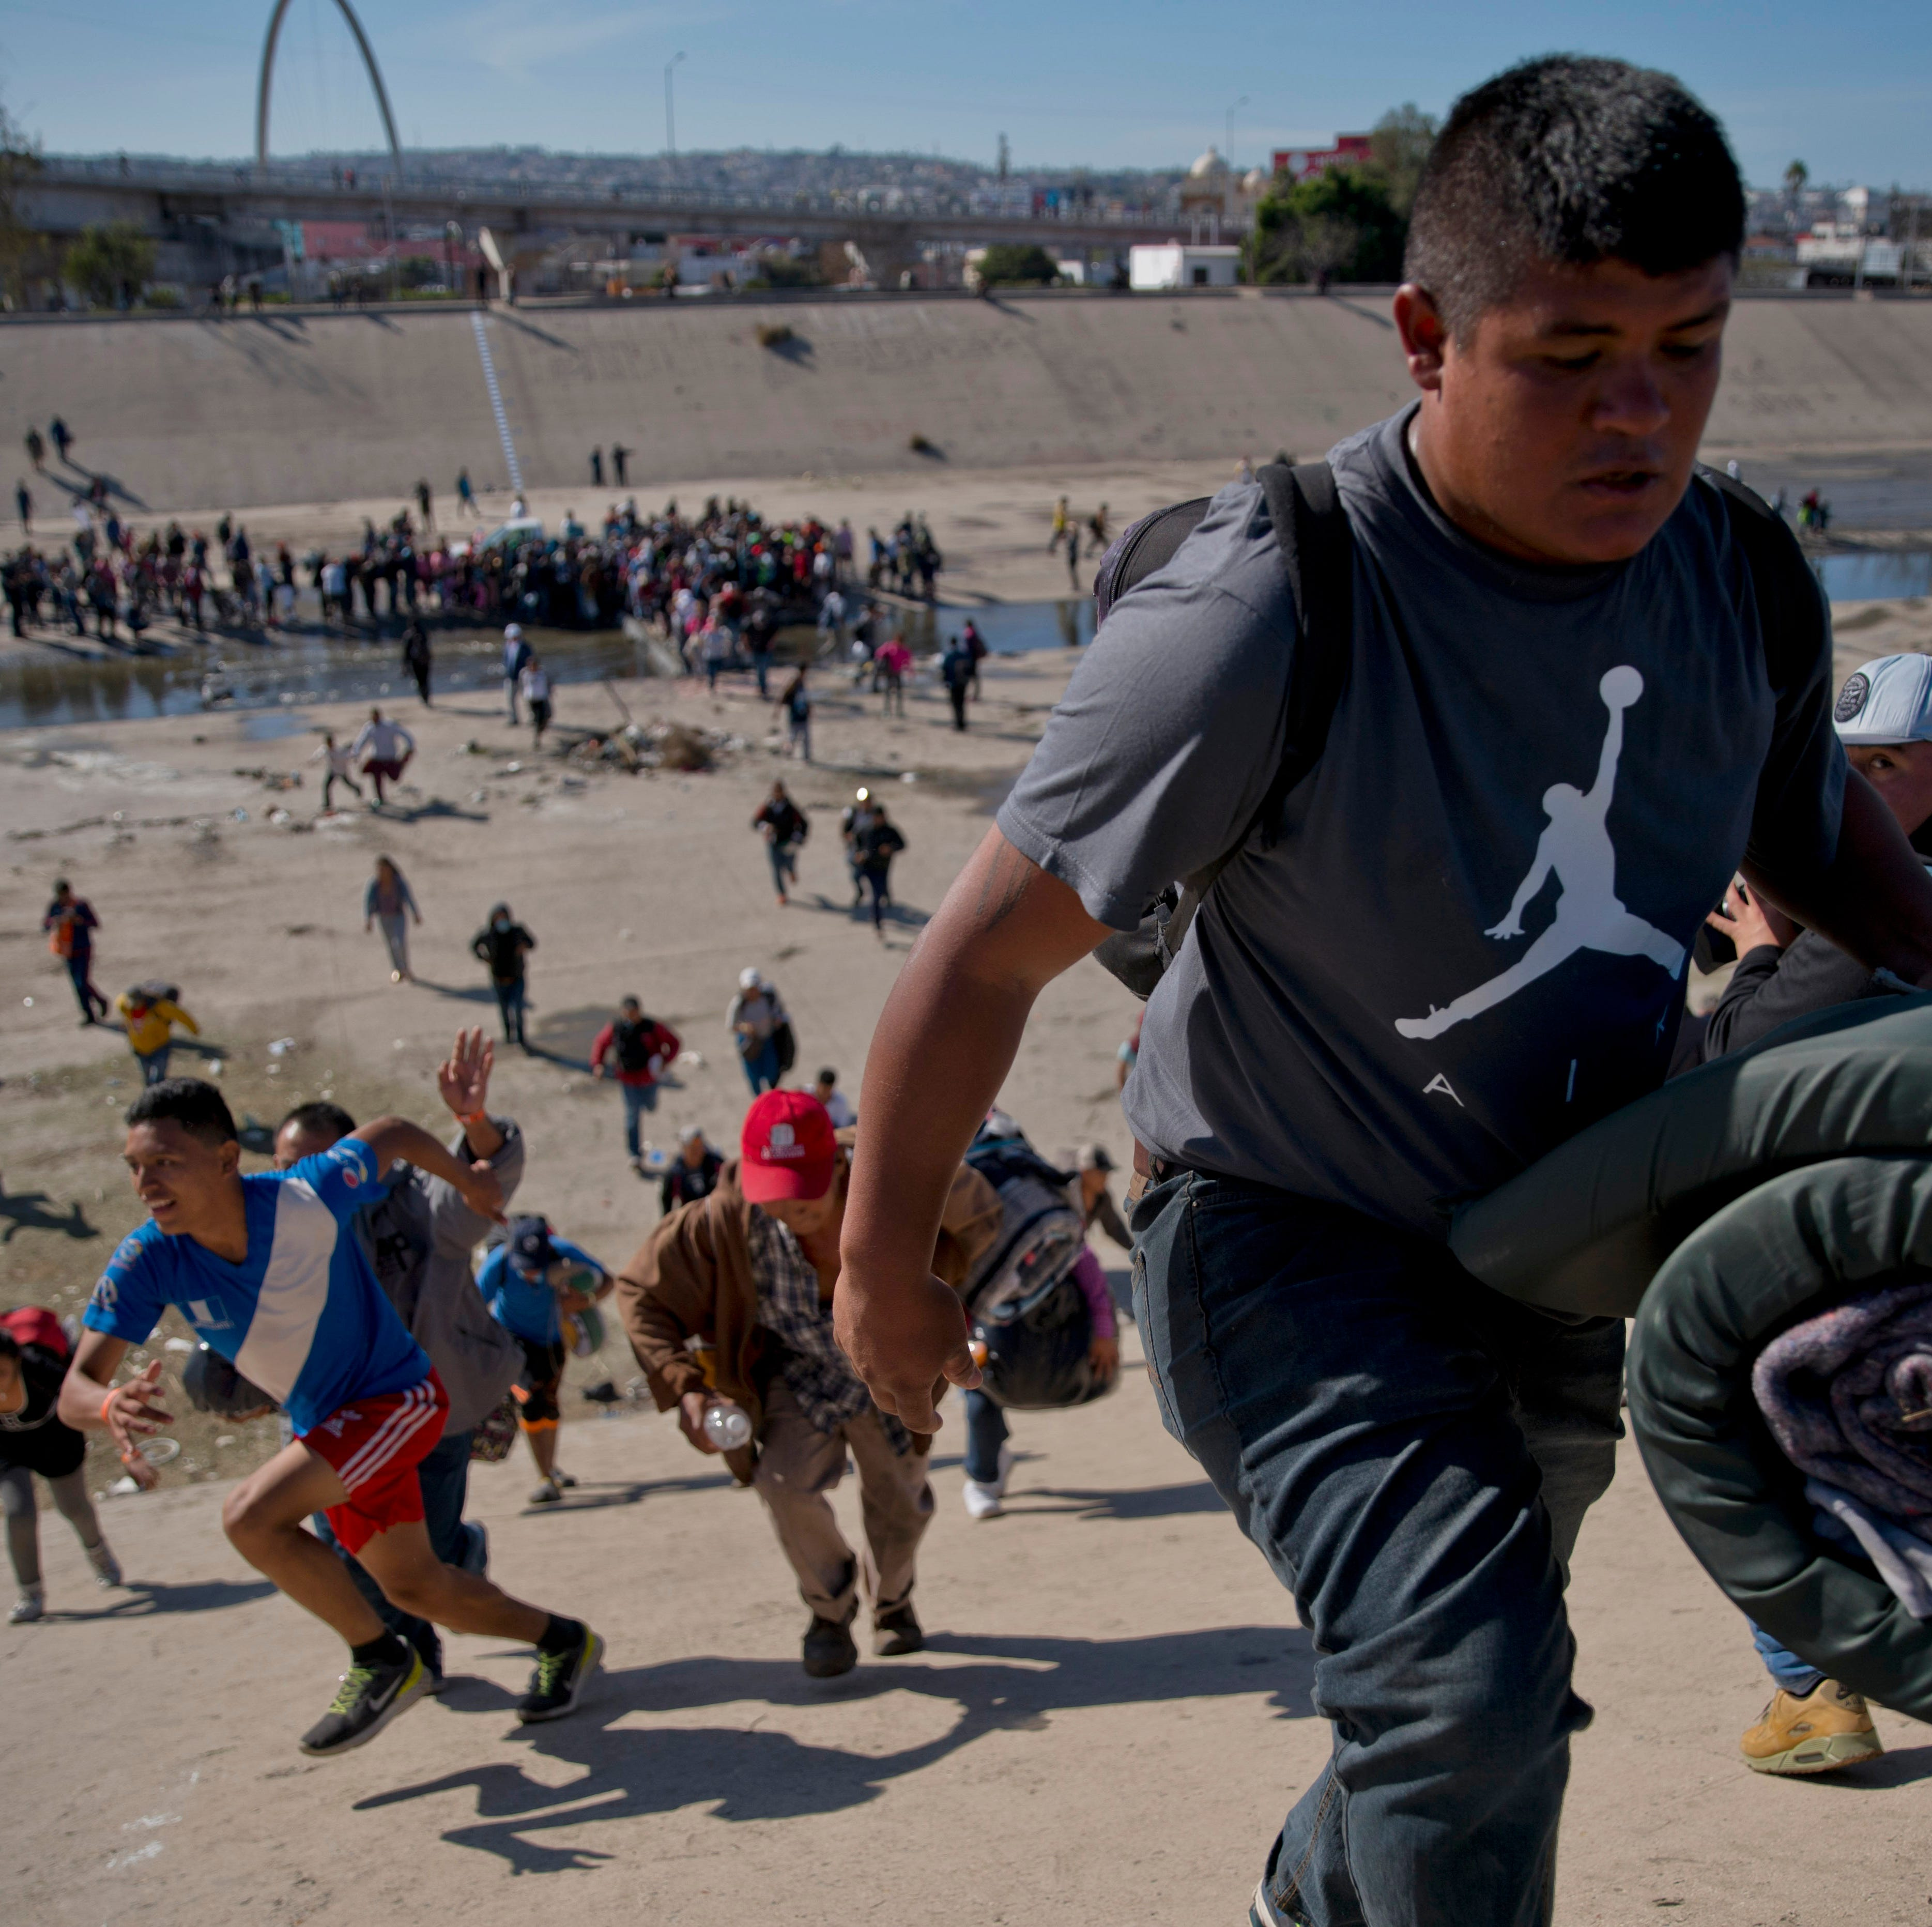 Why do migrant caravans from Central America travel to Tijuana, taking the longest route to the U.S. border?